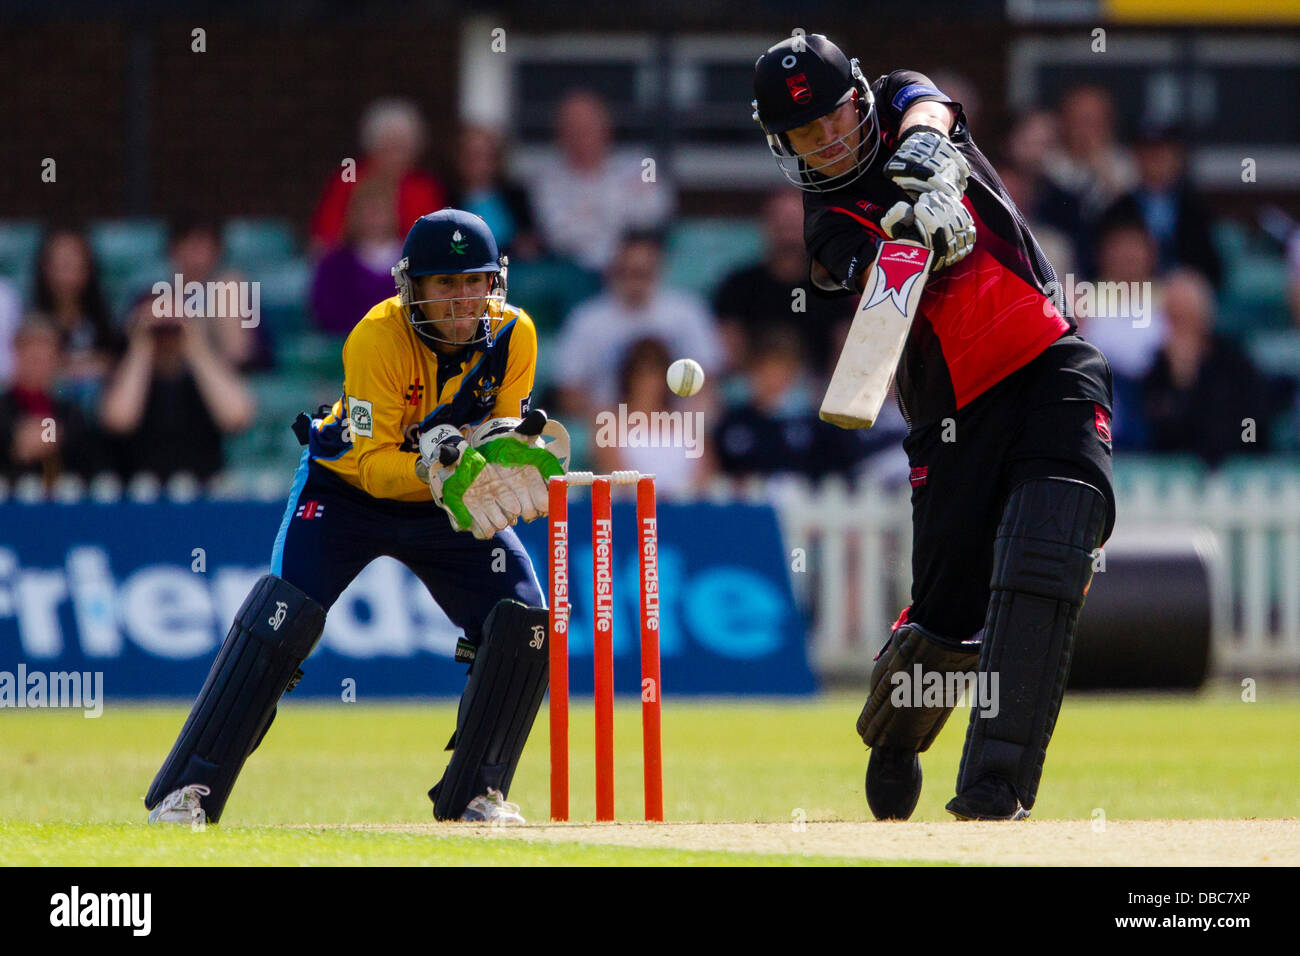 Leicester, UK. Sunday 28th July 2013.  Leicestershire's Josh Cobb (right) hits out as Yorkshire's Dan Hodgson - Stock Image